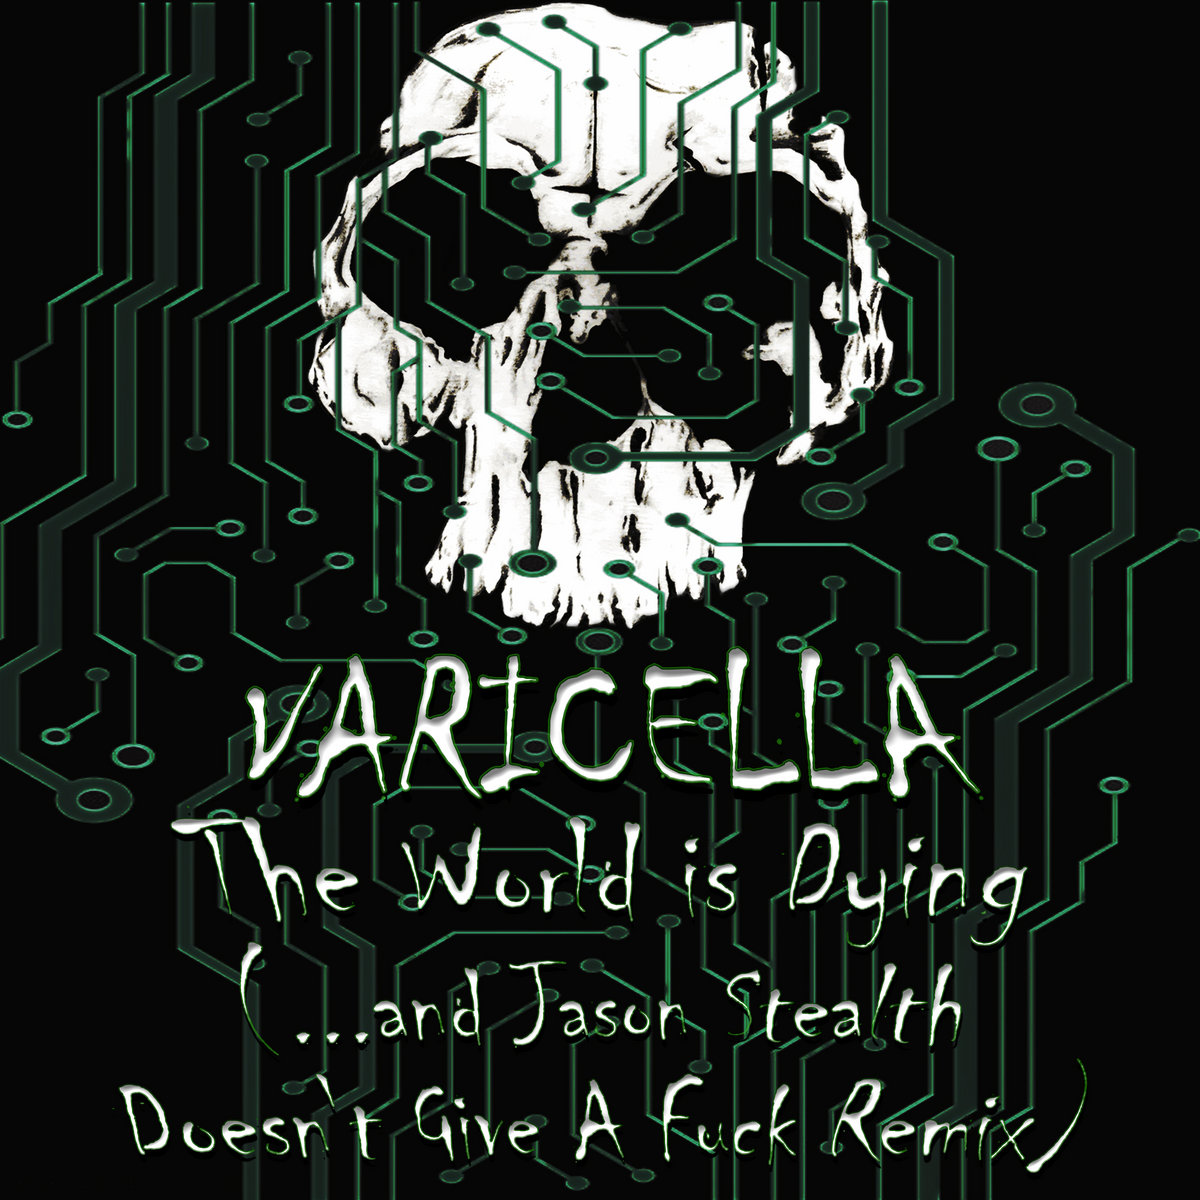 The World is Dying (...and Jason Stealth Doesn't Give A Fuck Remix) by Varicella